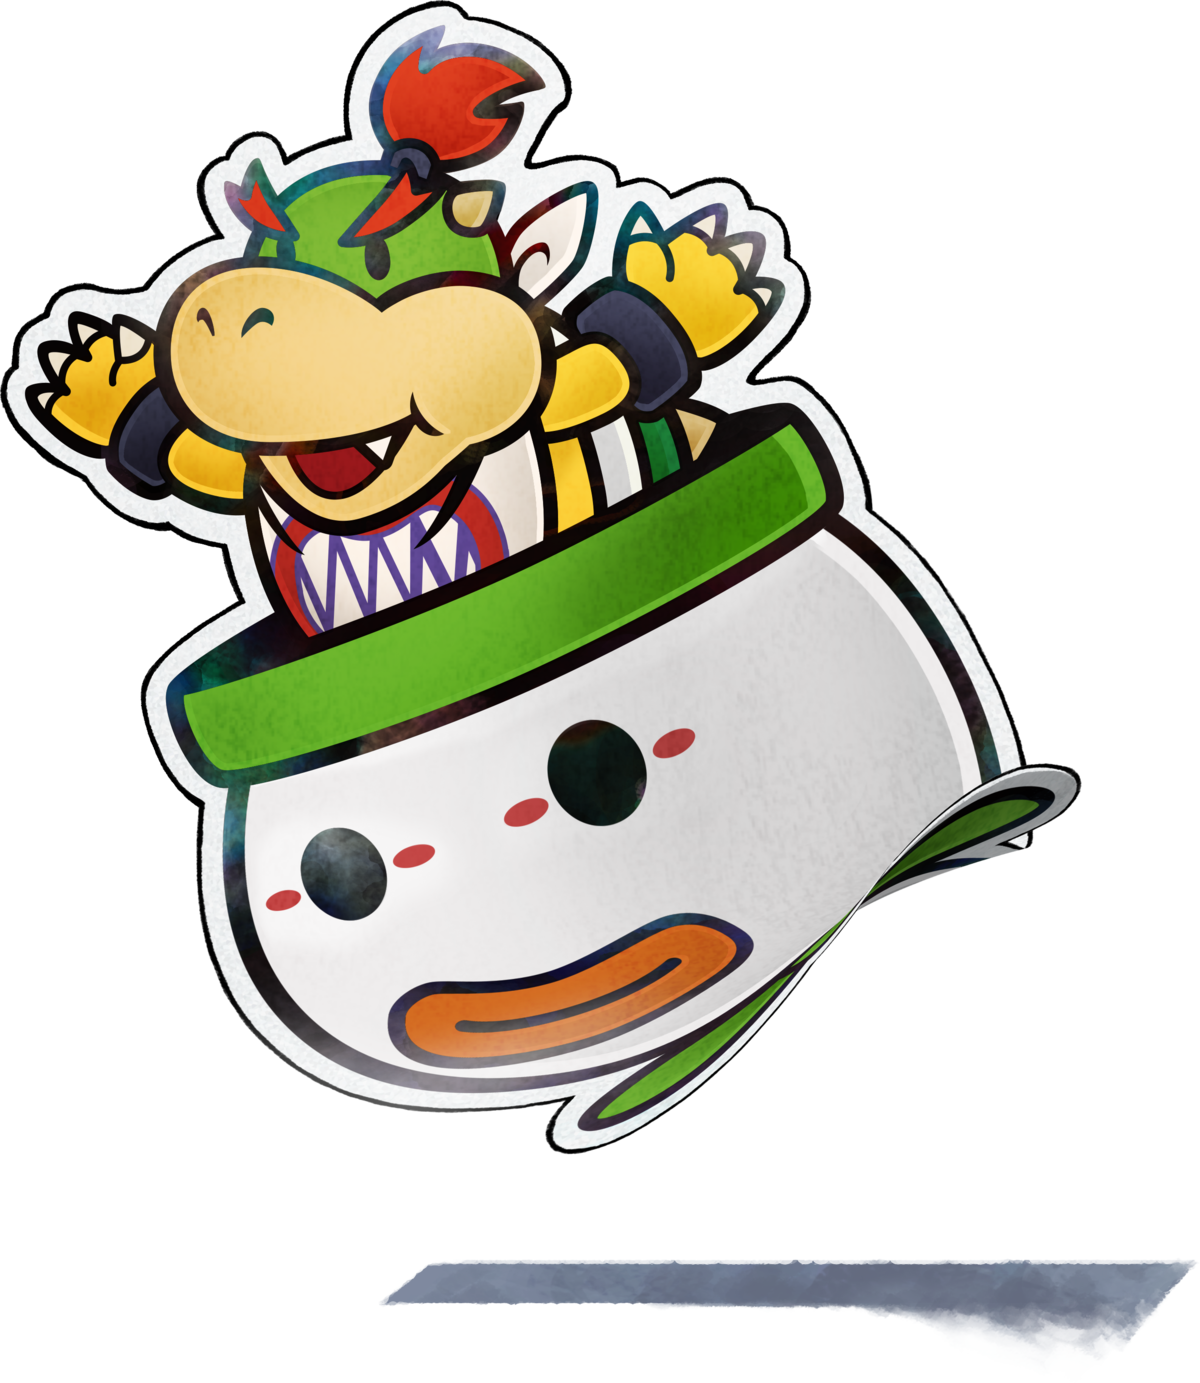 Paper Bowser Jr Super Mario Wiki The Mario Encyclopedia